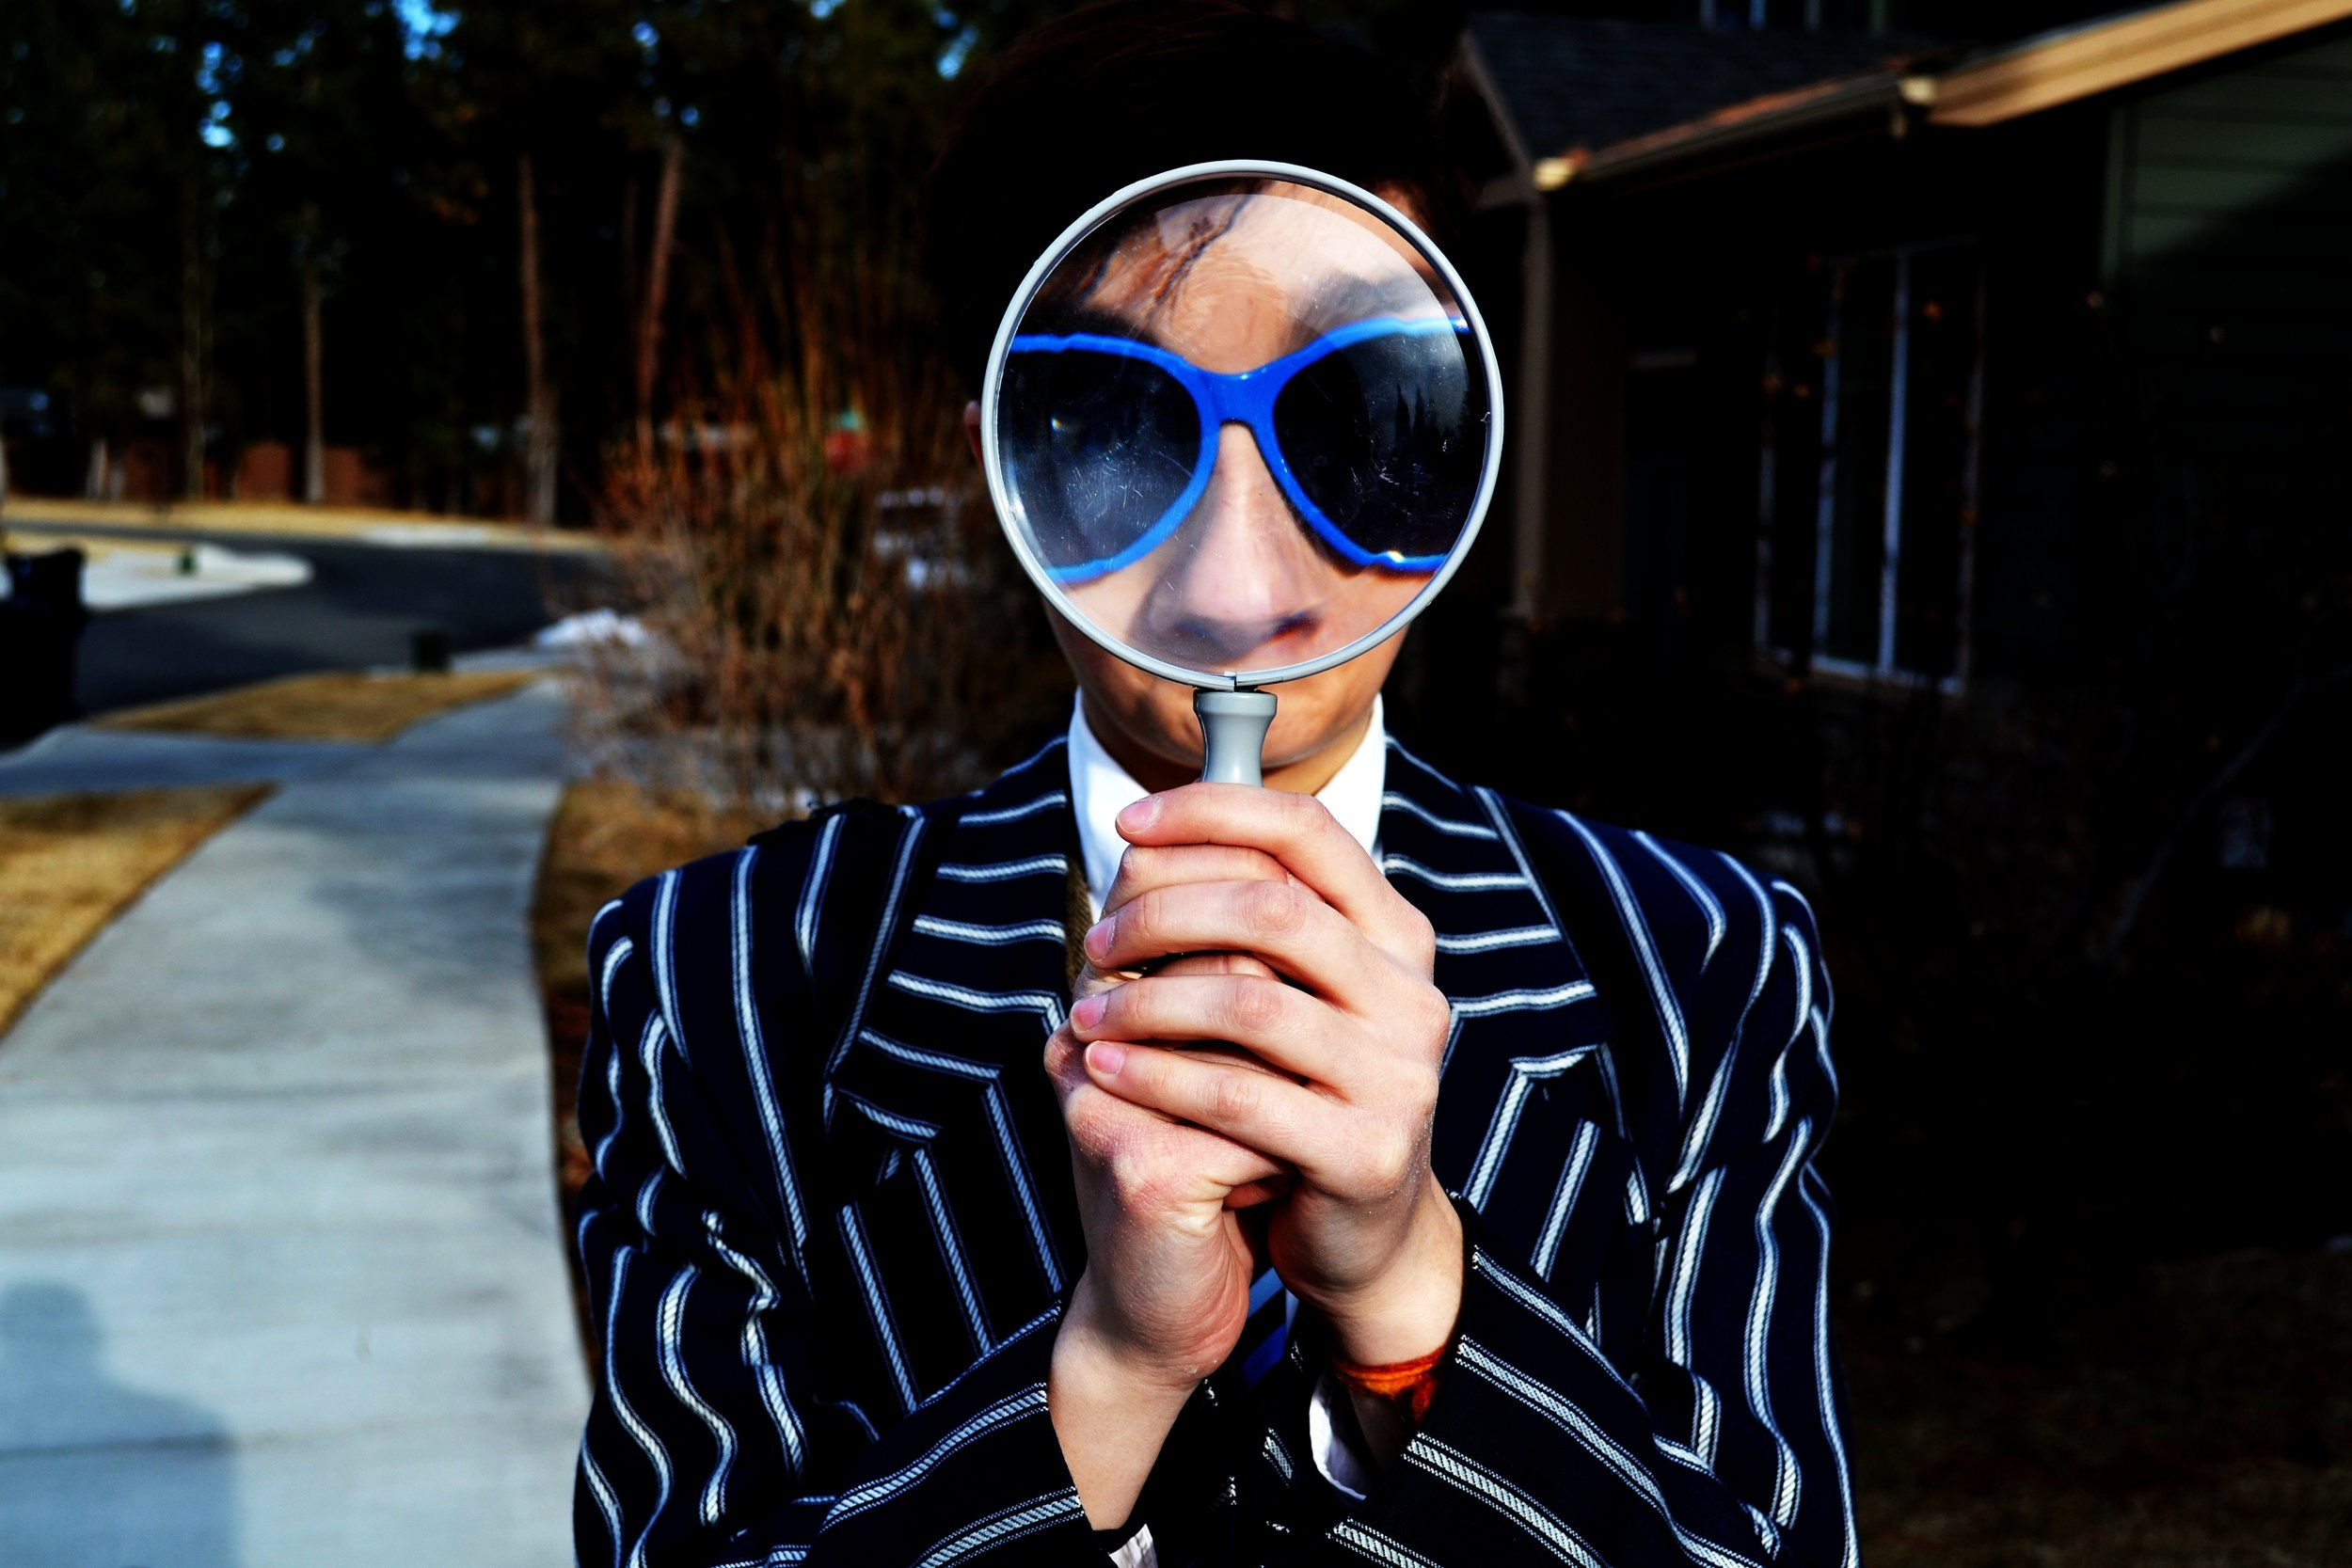 person-in-pinstripe-suit-looking-through-magnifying-glass-marten-newhall.jpg